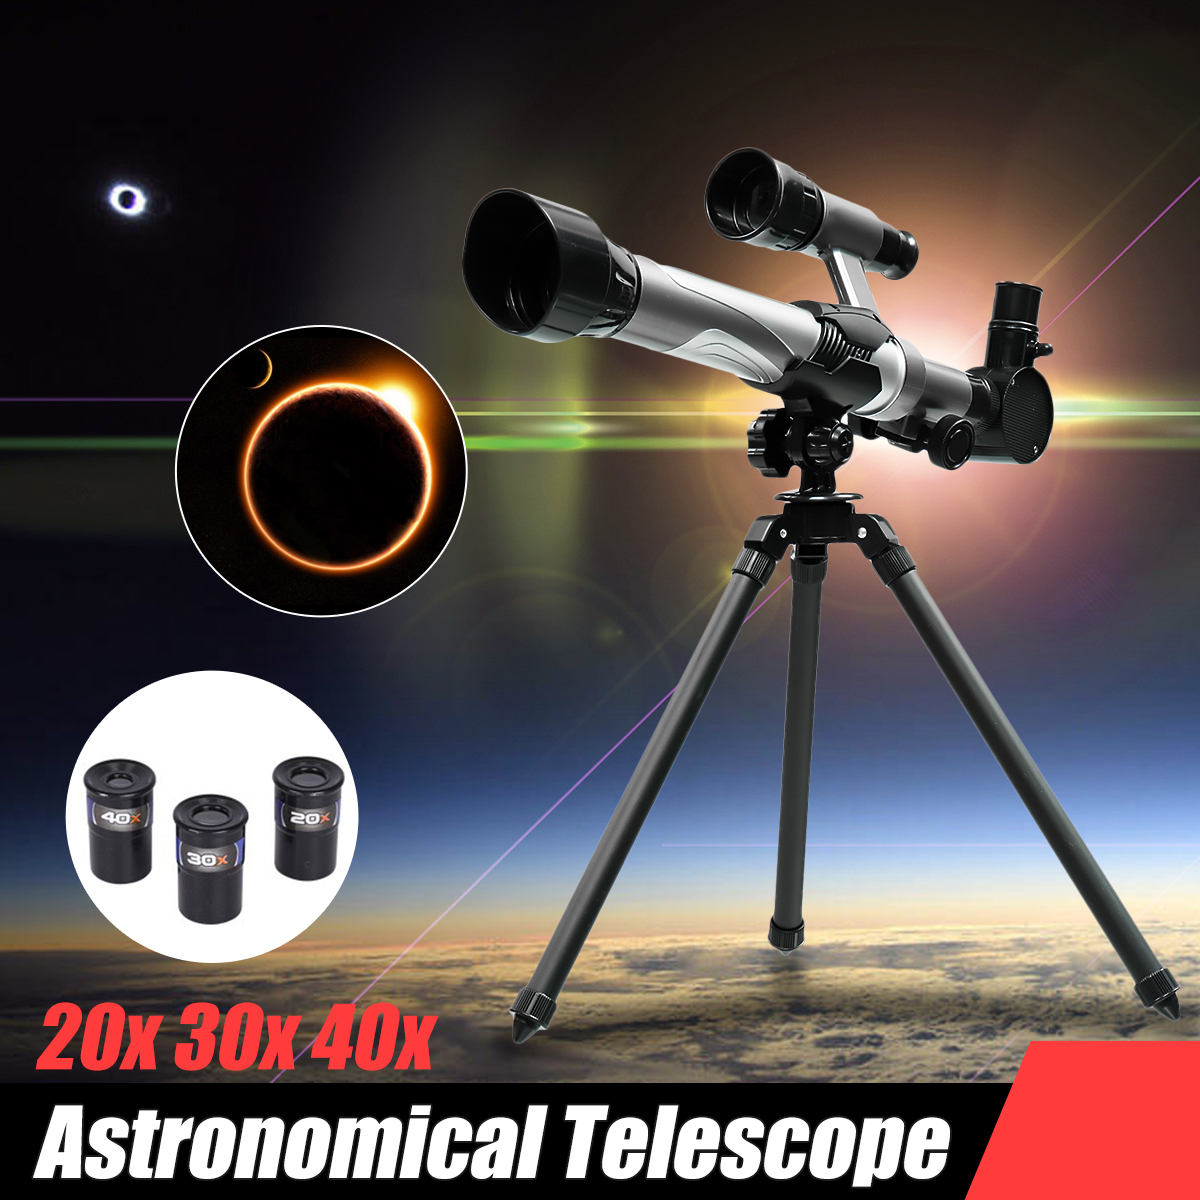 Refractive Monocular Astronomical Telescope Space Spotting Telescope TripodF +3 Eyepiece Educational Toys For Children Kids цена